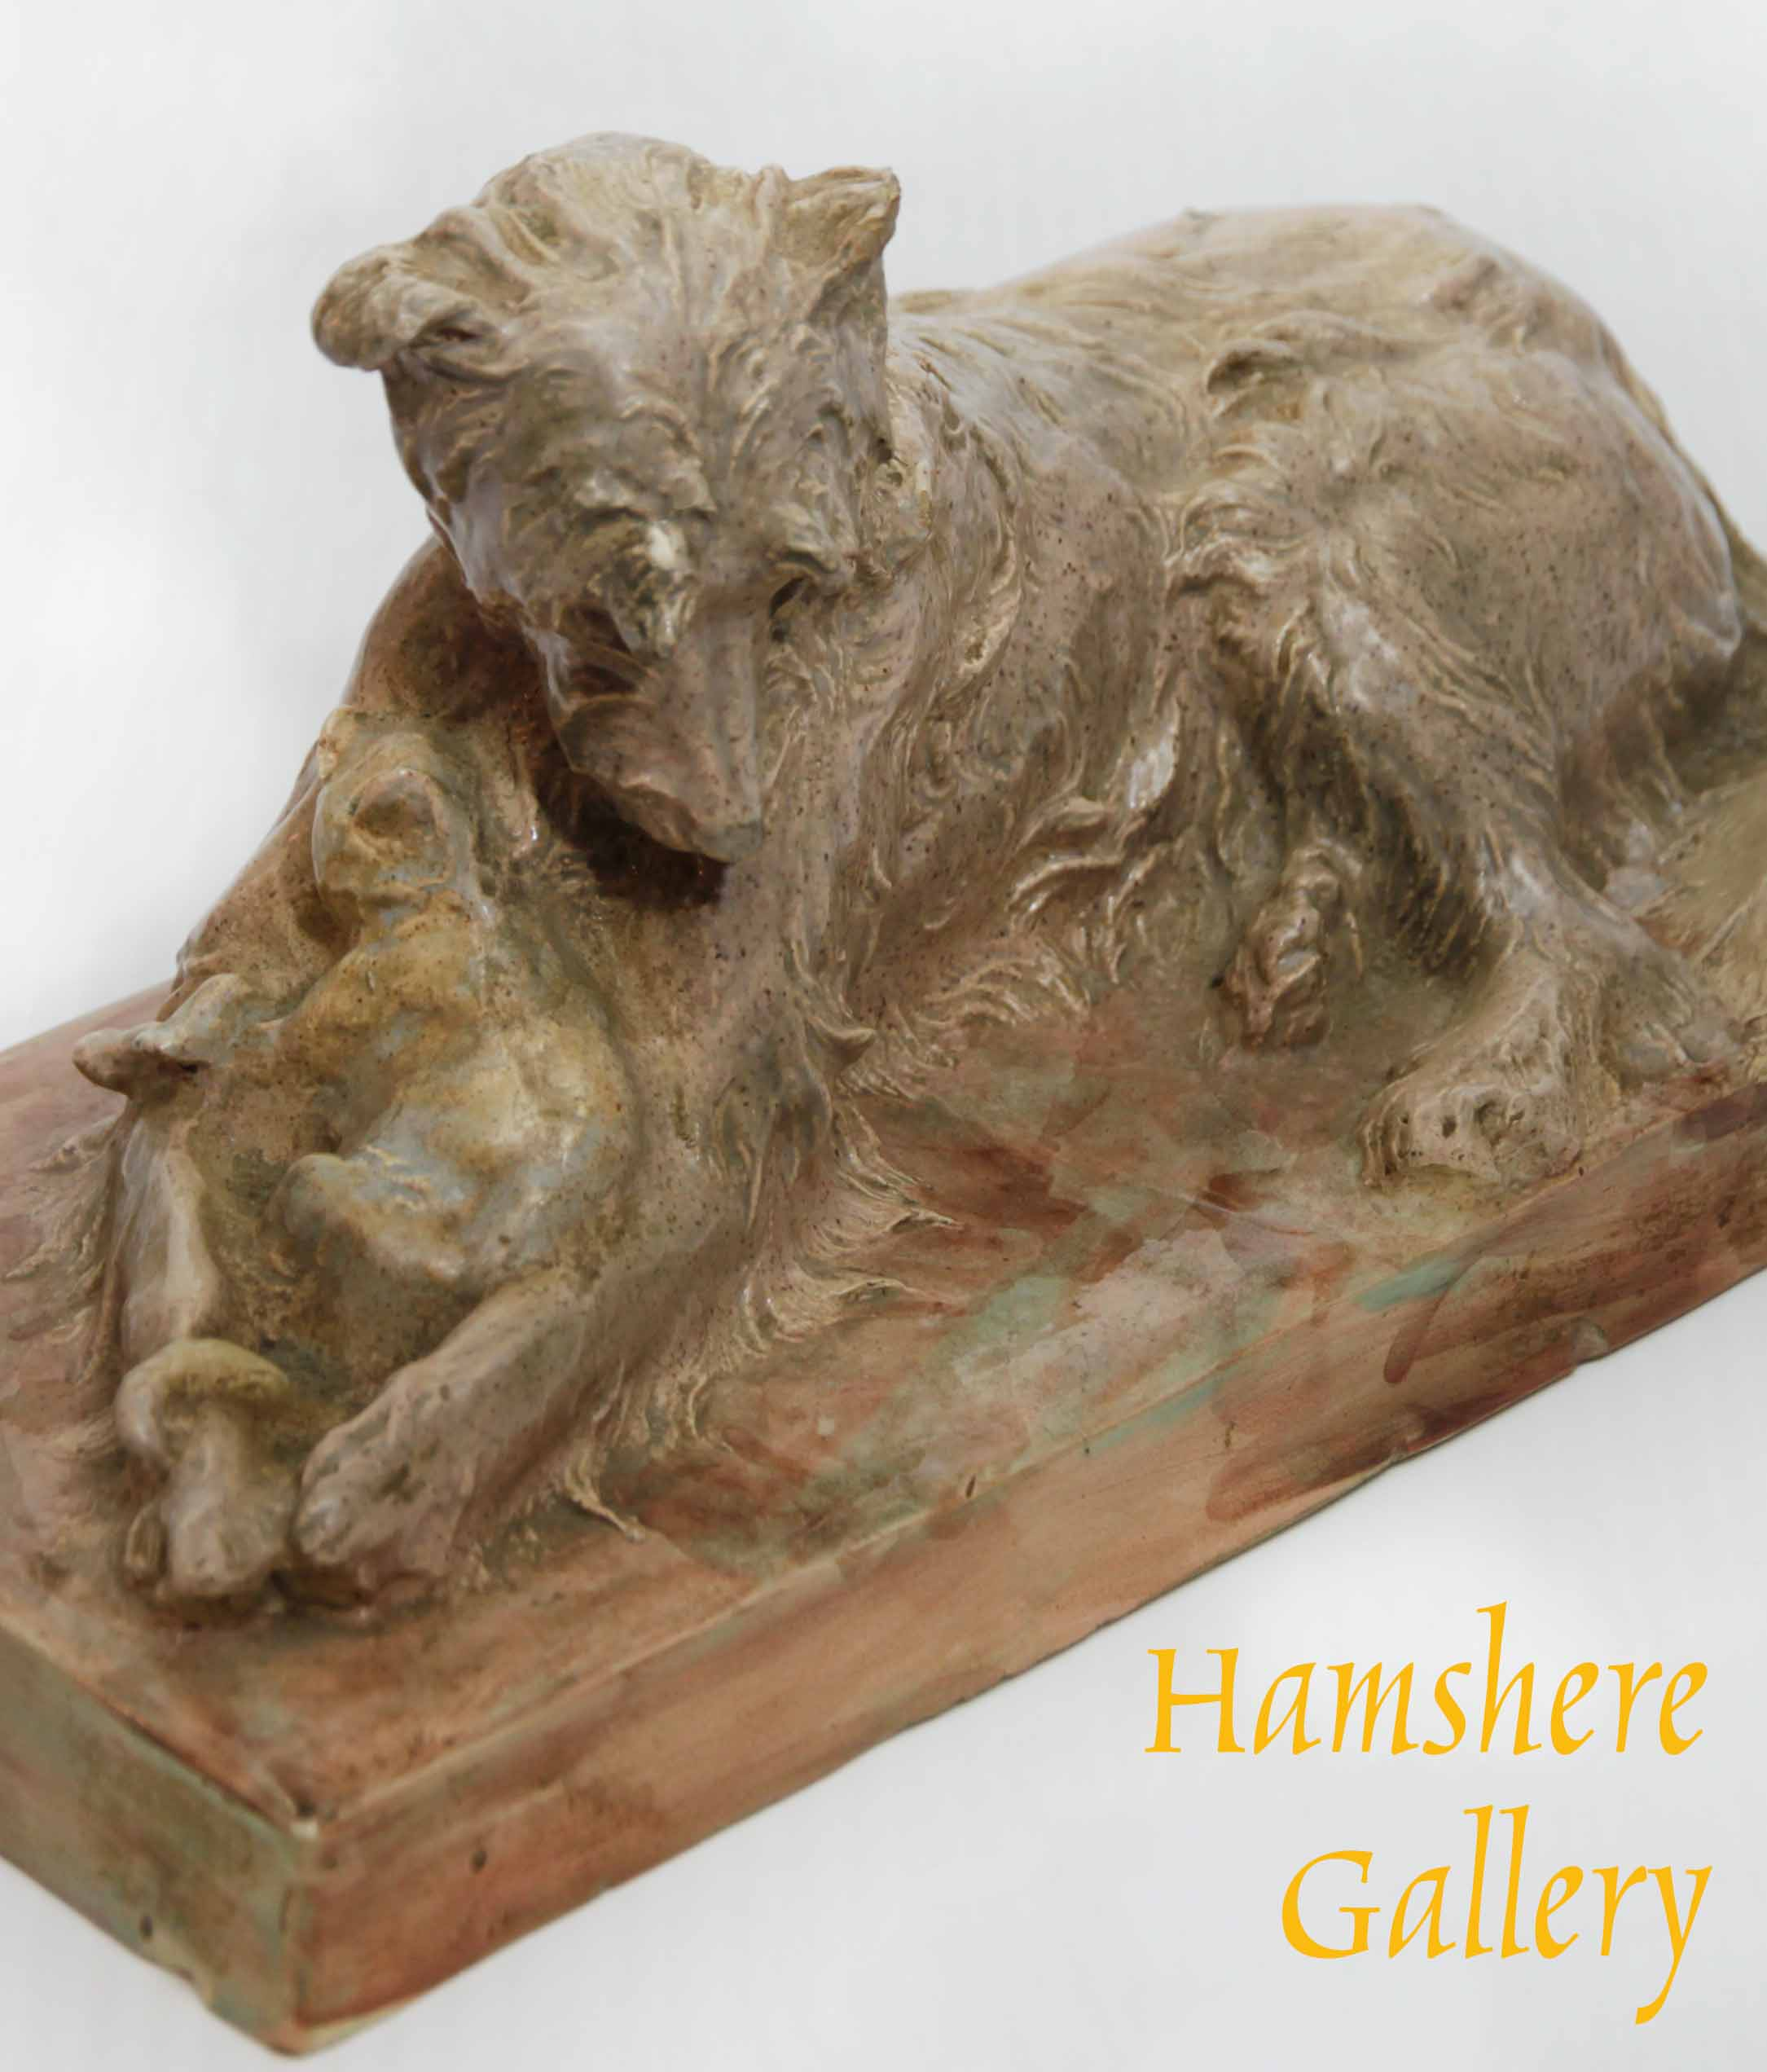 """Click for larger image: """"Les Deux amis"""" Briard and cat, enamel ceramic by Charles Paillet (French, 1871-1937) - """"Les Deux amis"""" Briard and cat, enamel ceramic by Charles Paillet (French, 1871-1937)"""